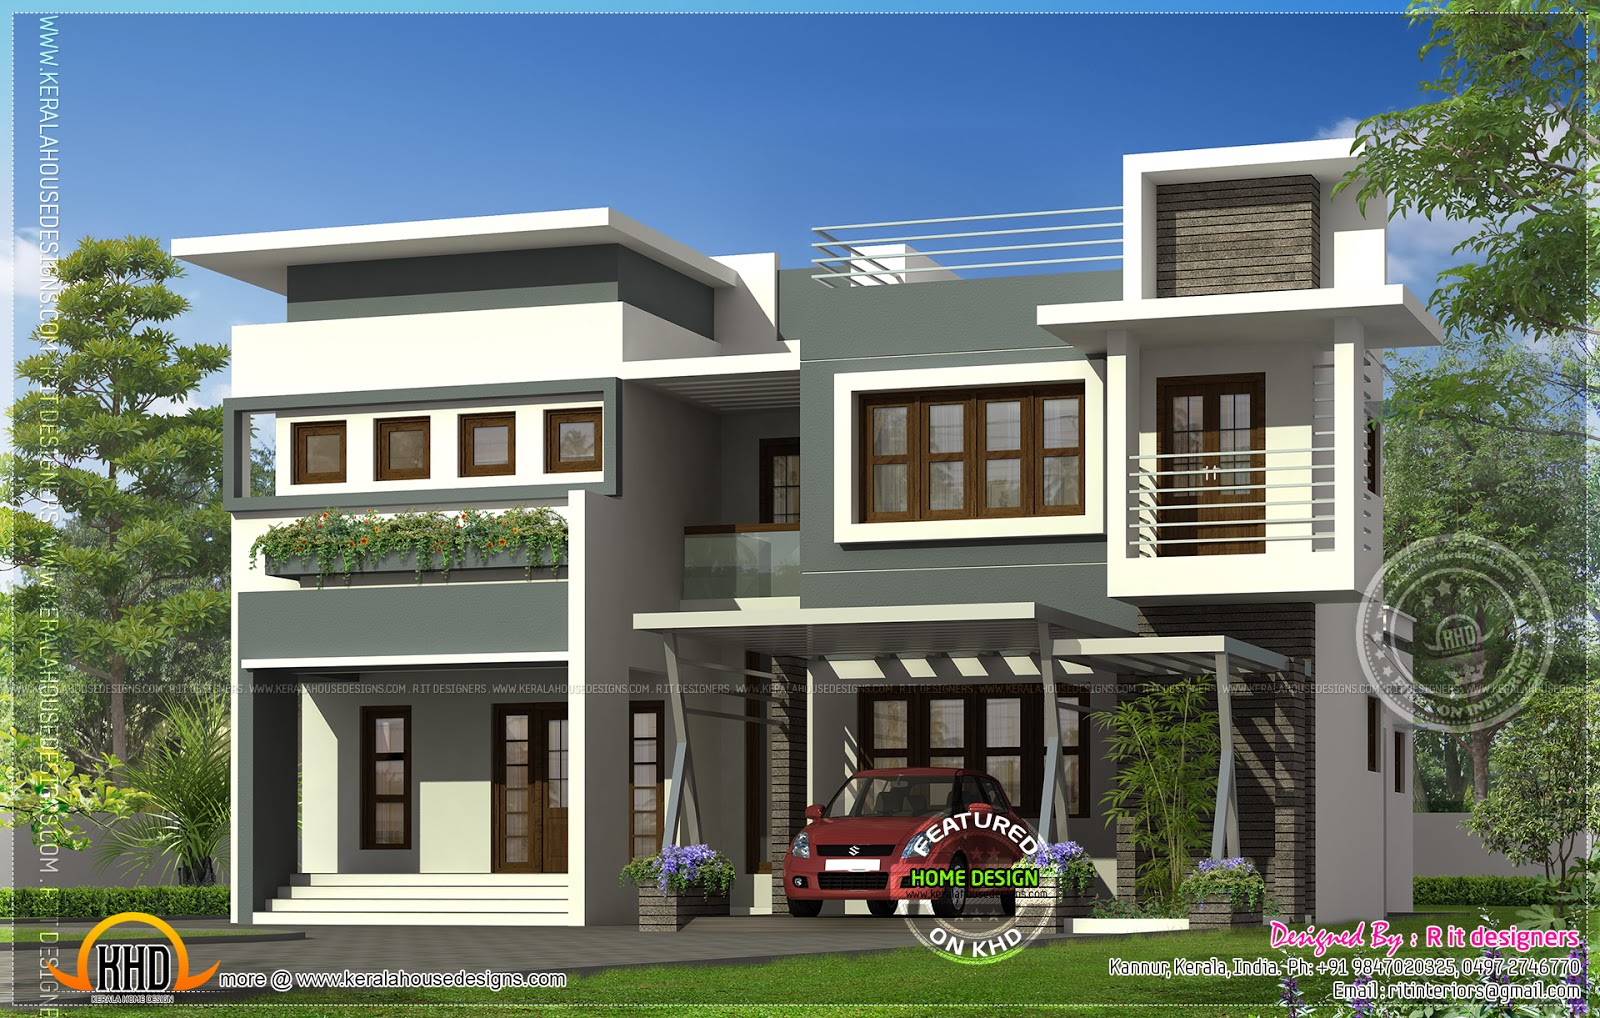 Modern contemporary residence design home kerala plans - Contemporary house designs ...